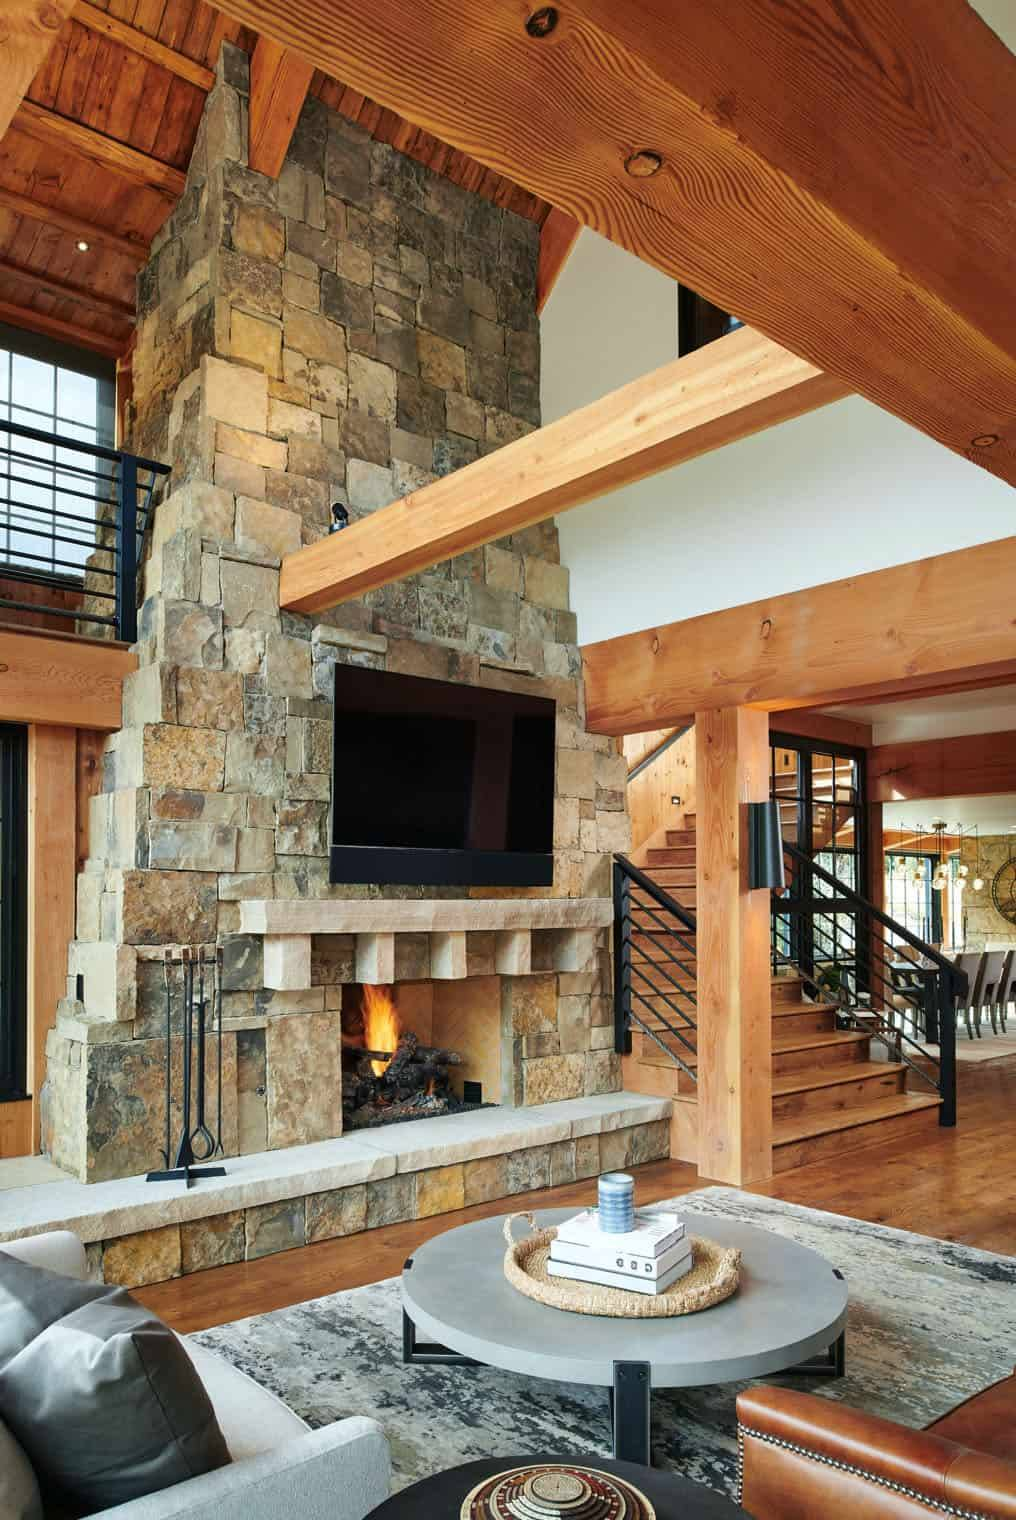 A two-story stone fireplace is the centerpiece of the living area